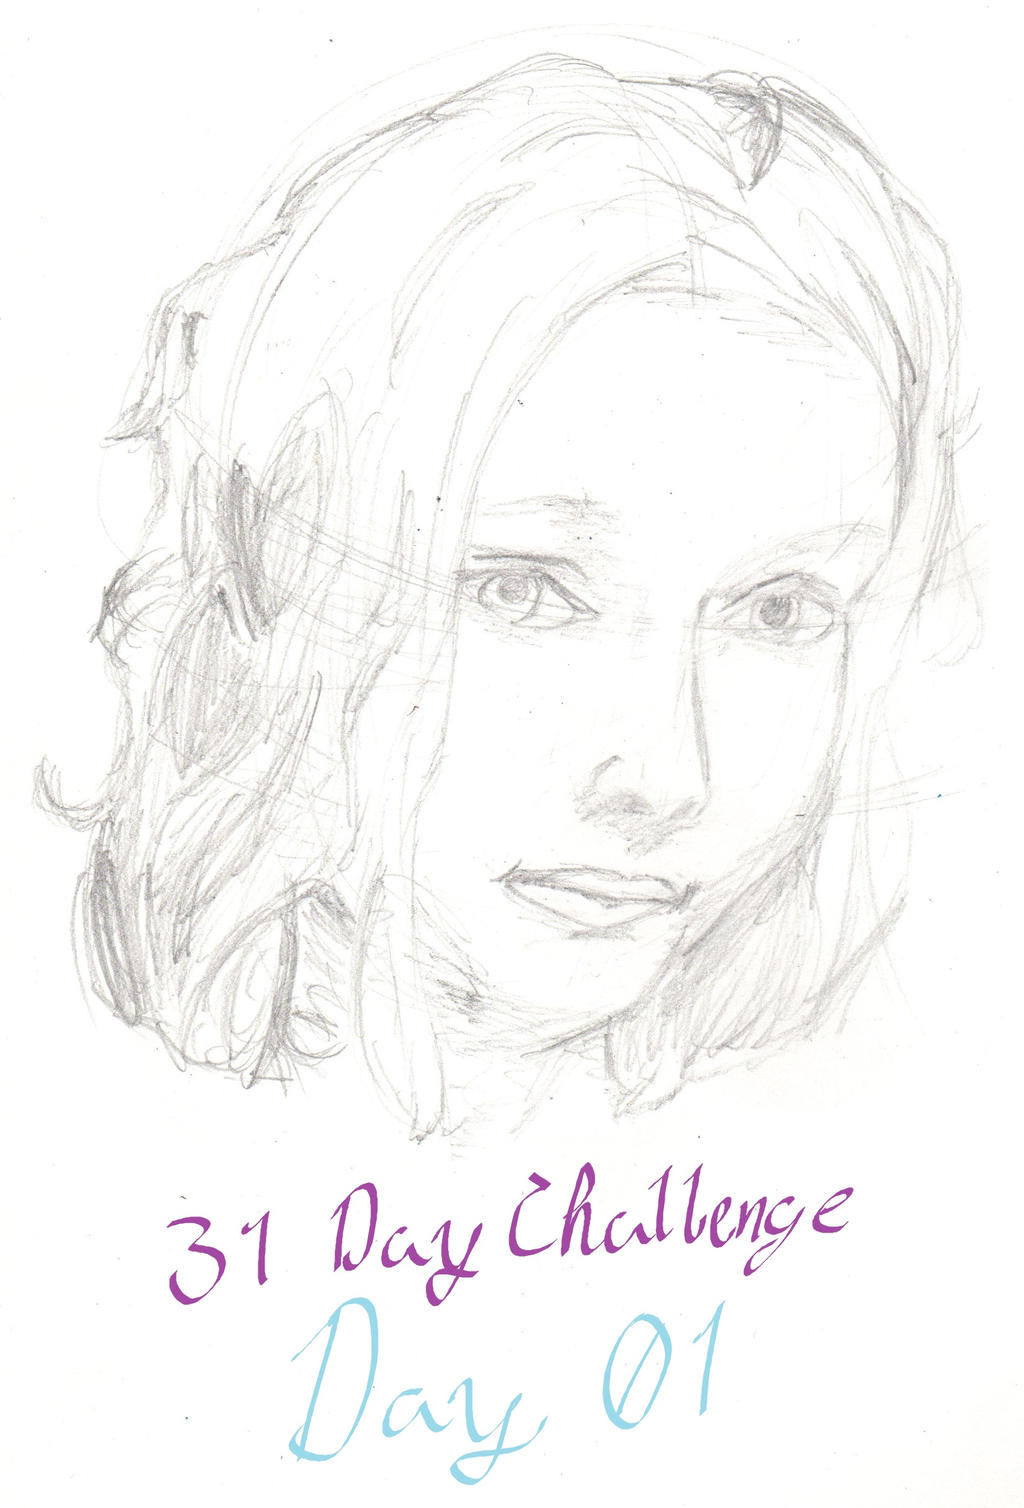 31 Day Challenge Day 01 by Ahtilak